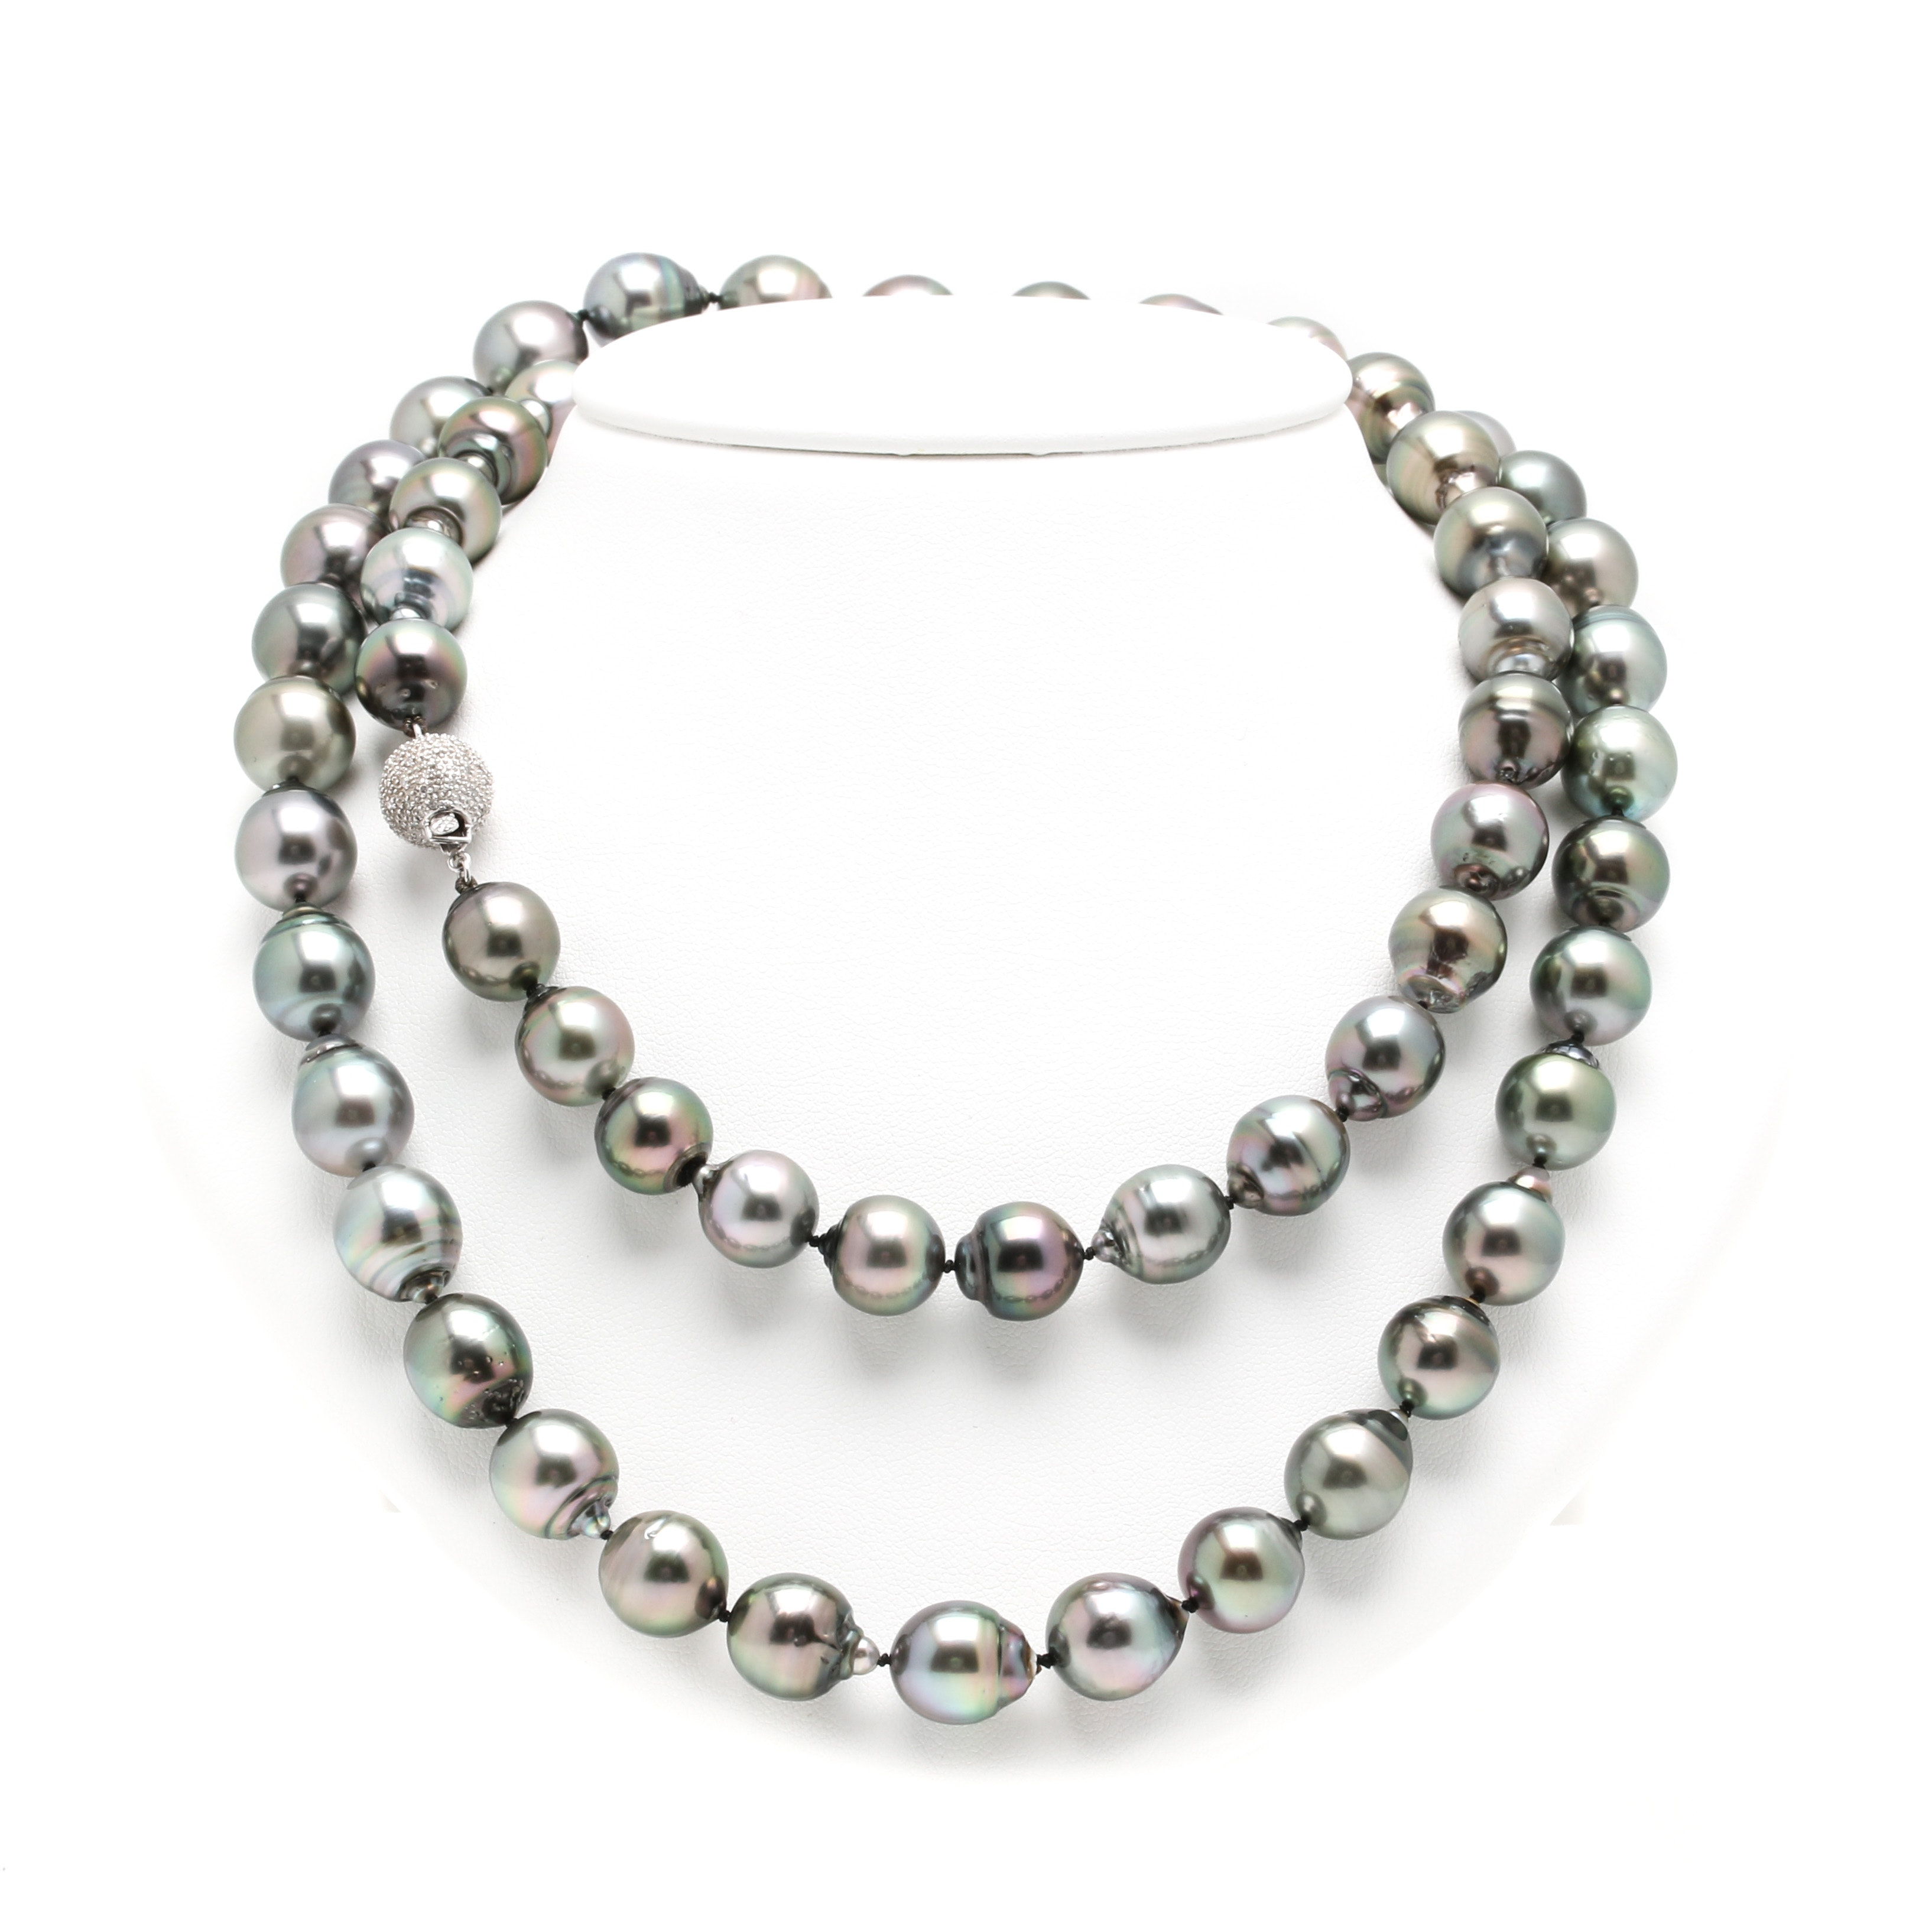 14K White Gold Tahitian Cultured Pearl and Diamond Necklace With GIA Report